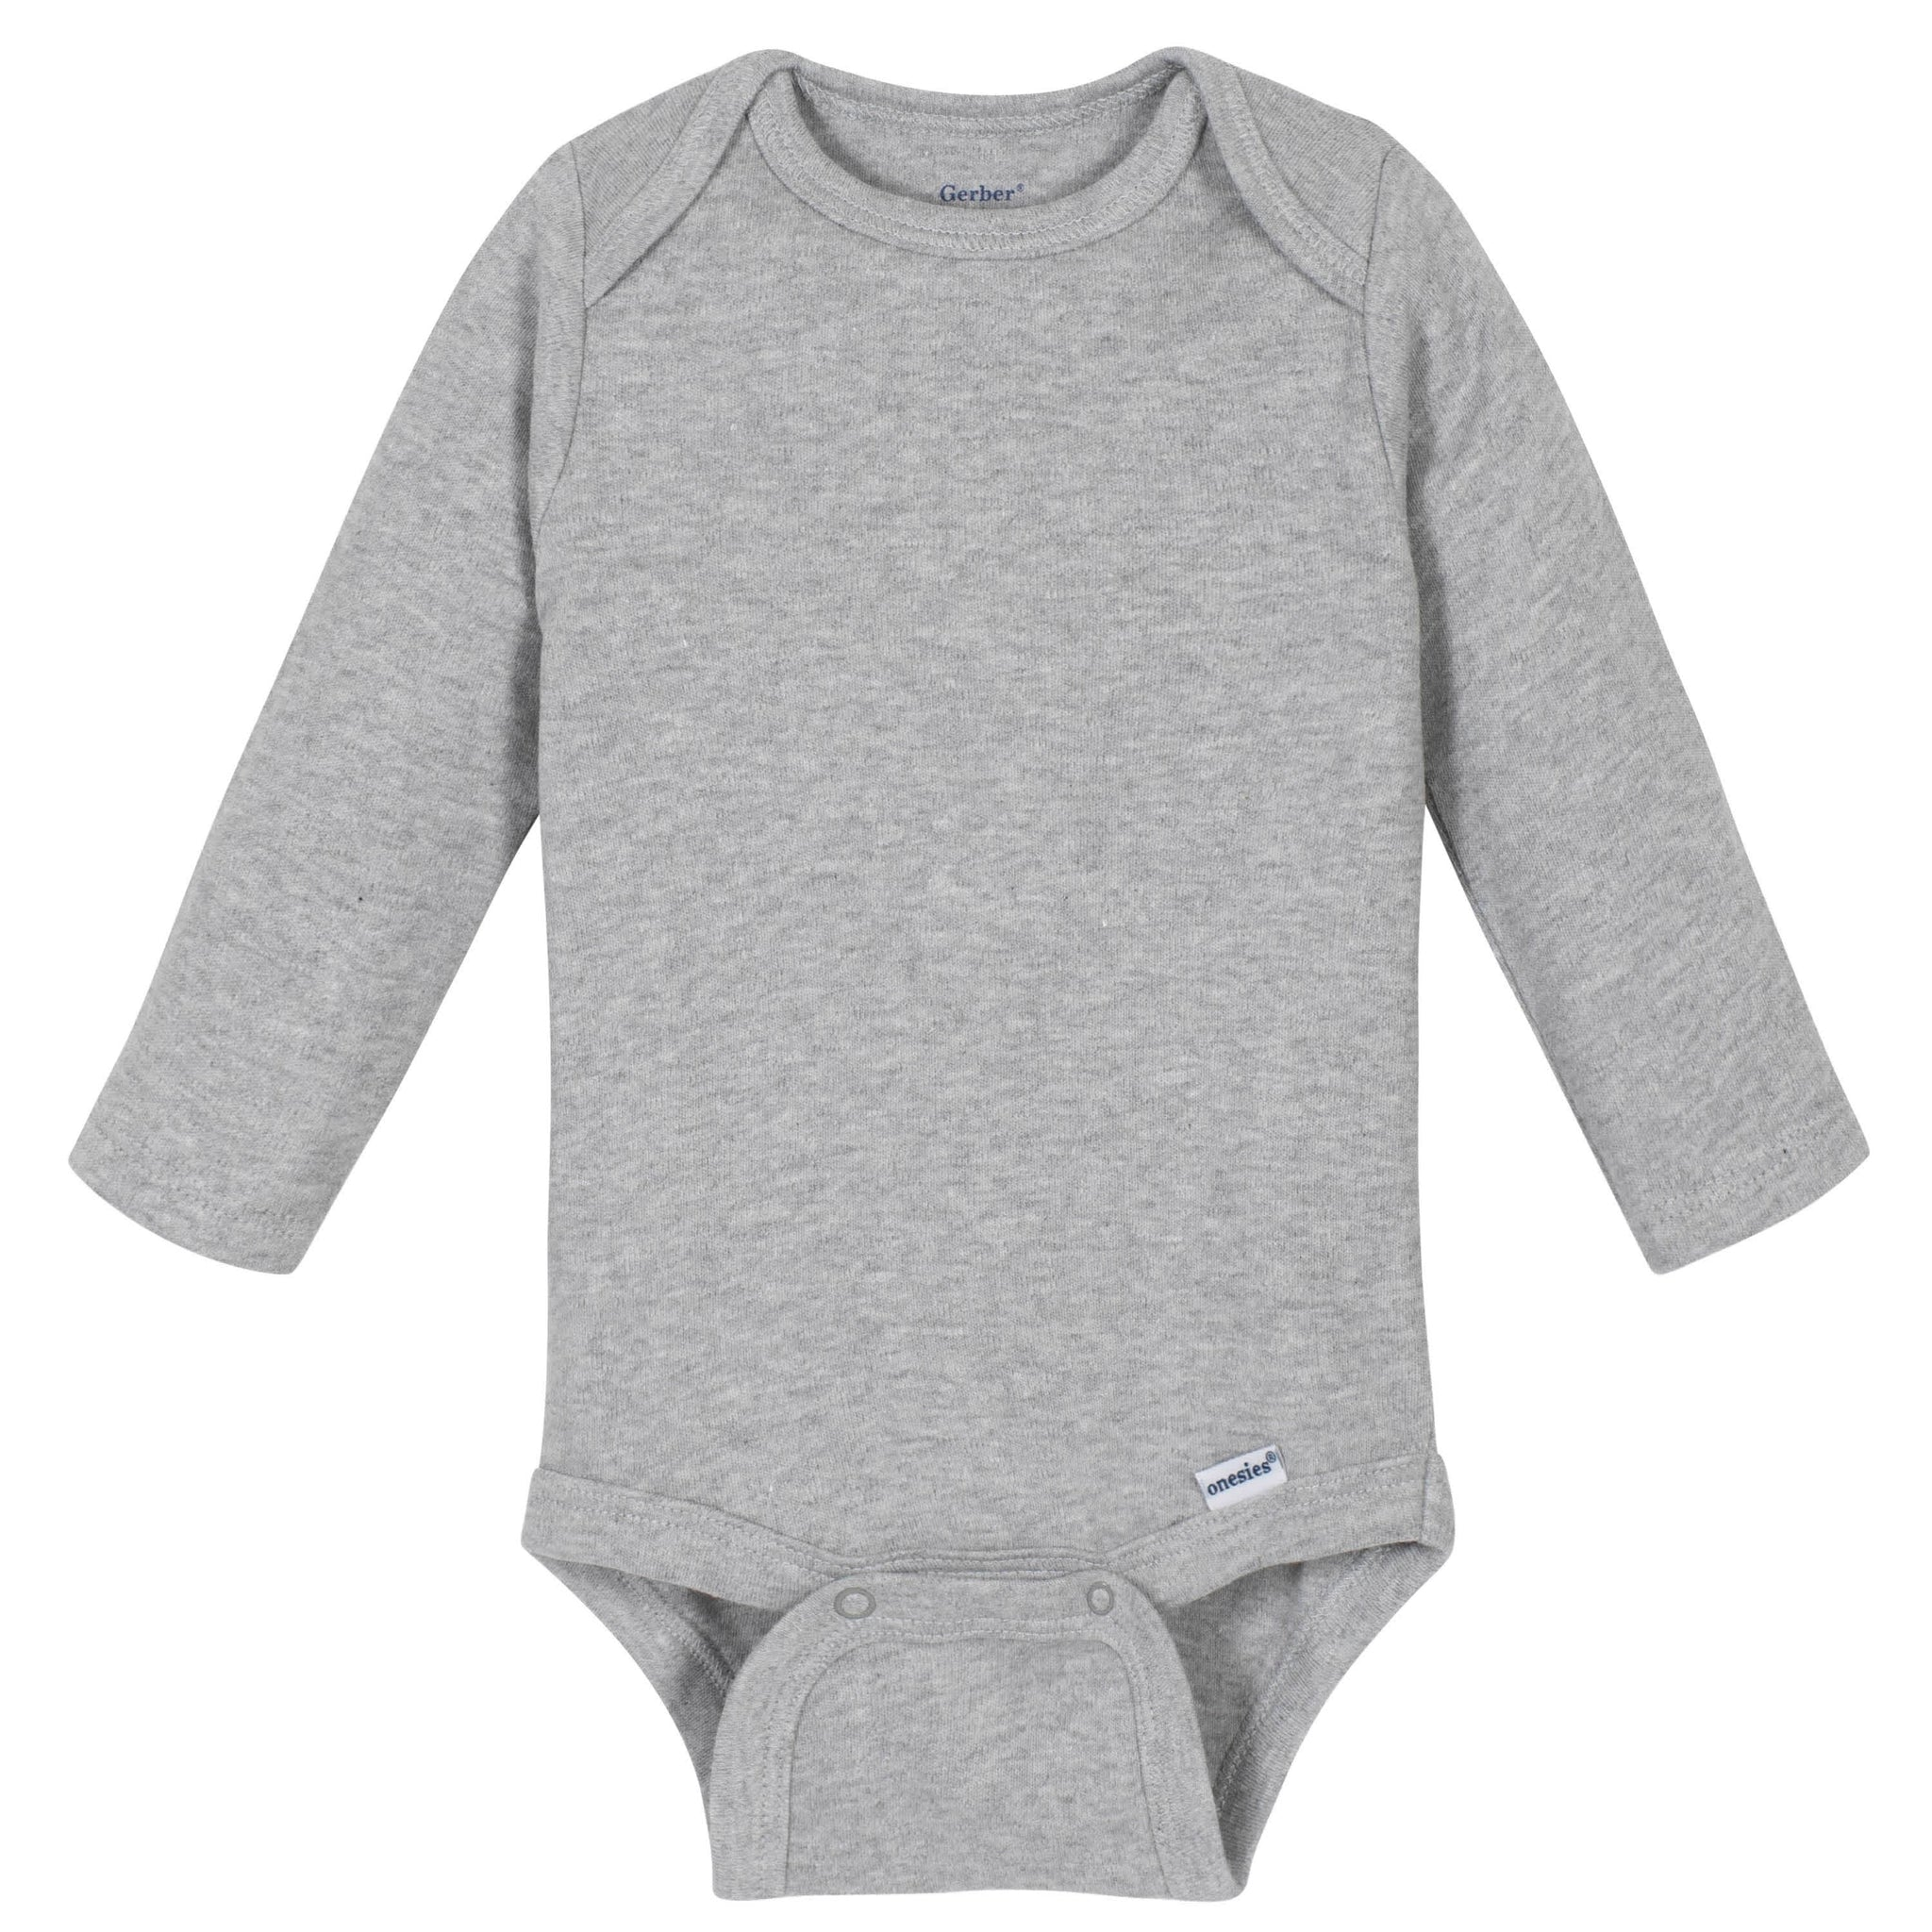 Gerber® Premium Light Gray Long Sleeve Onesies® Brand Bodysuit - 10 Colors Available